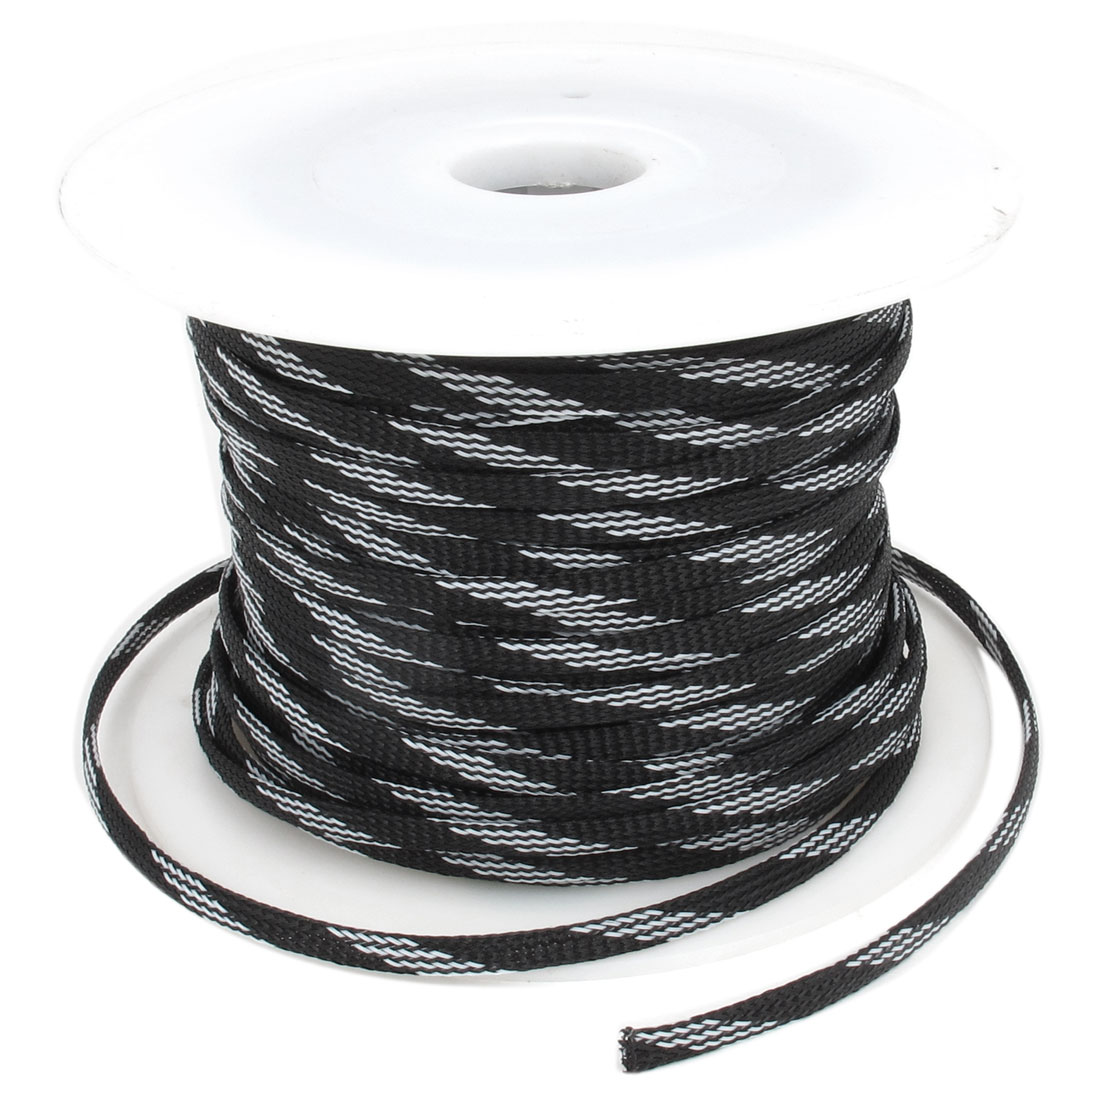 5mm x 100m Black White Expandable Braided High Dense PET Cable Sleeve DIY